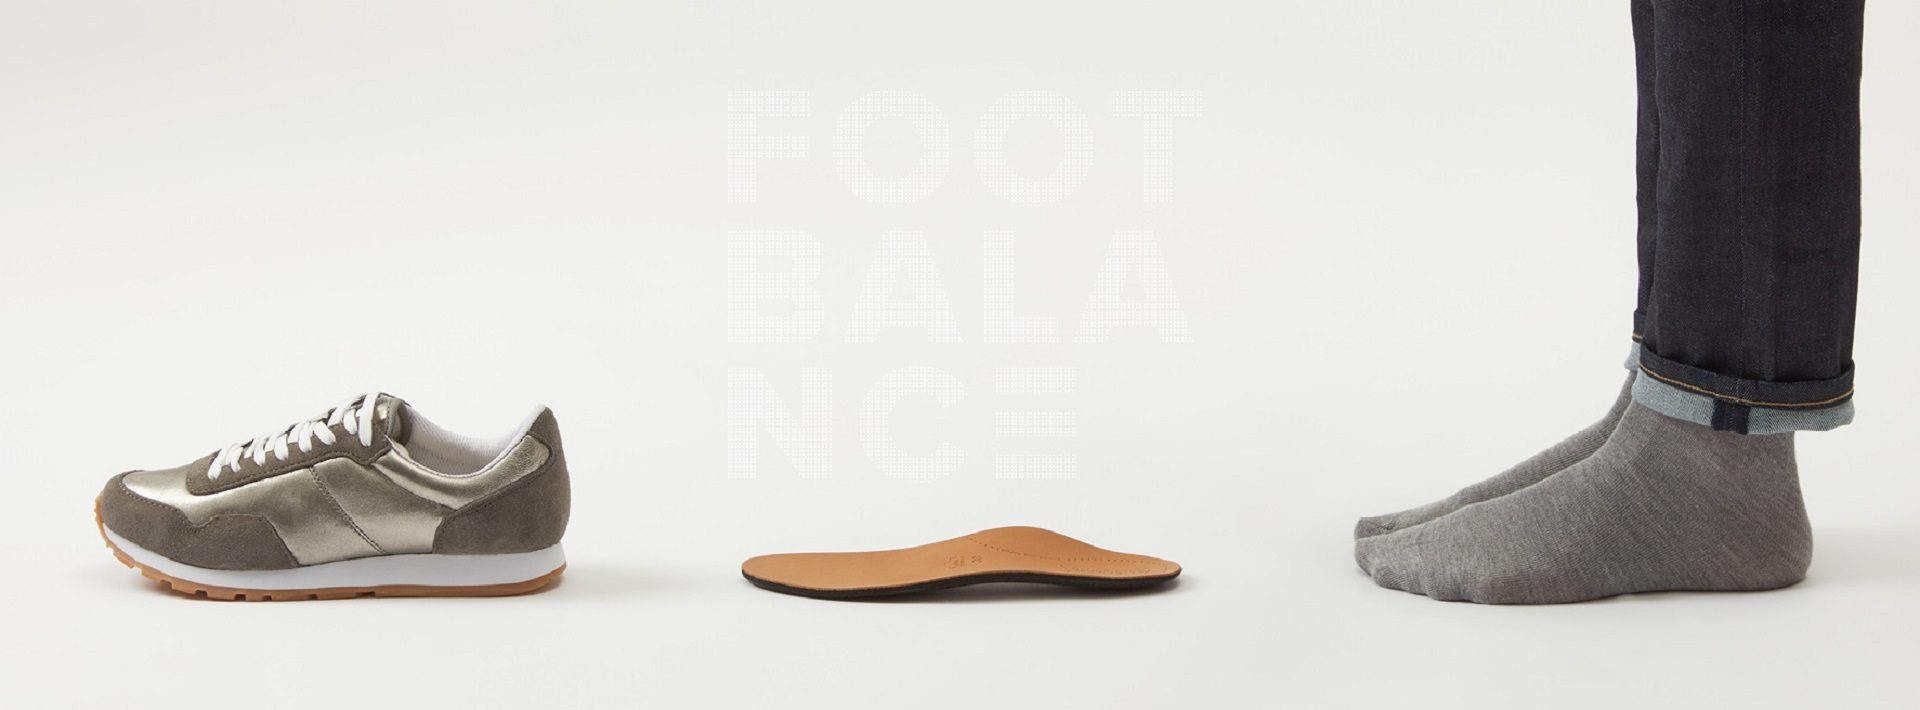 FootBalance FootBalance 100% Custom Leather Insole Unisex Comfort Narrow